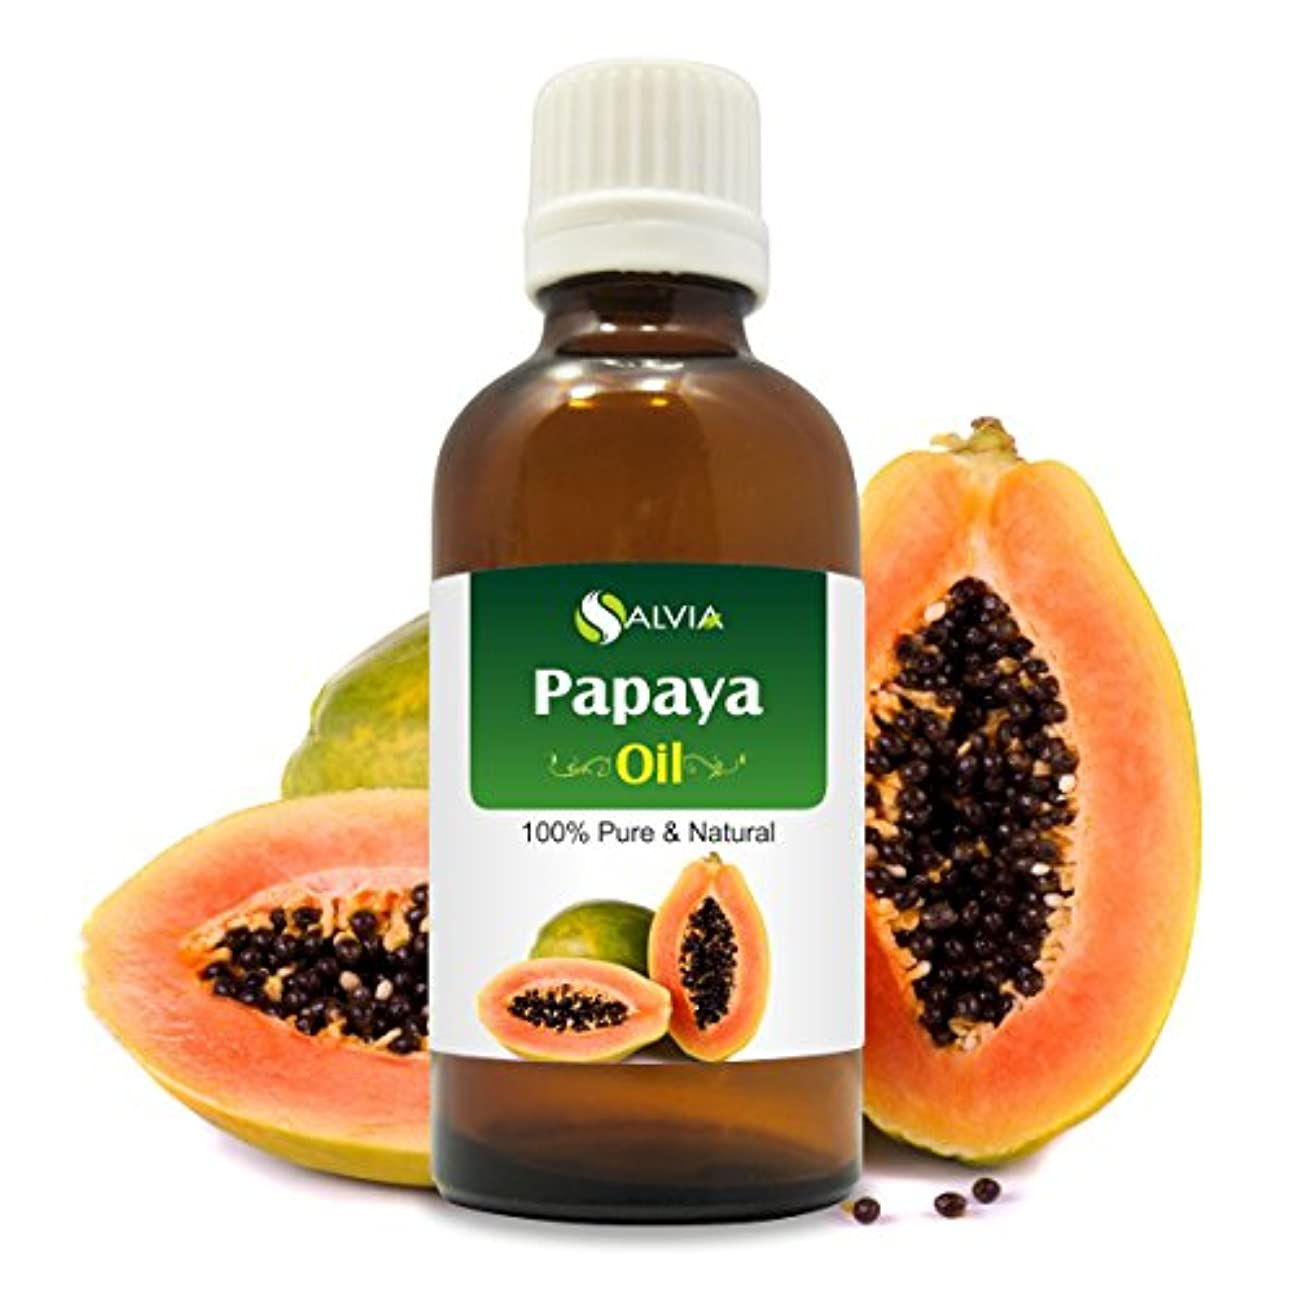 PAPAYA OIL 100% NATURAL PURE UNDILUTED UNCUT ESSENTIAL OIL 15ML